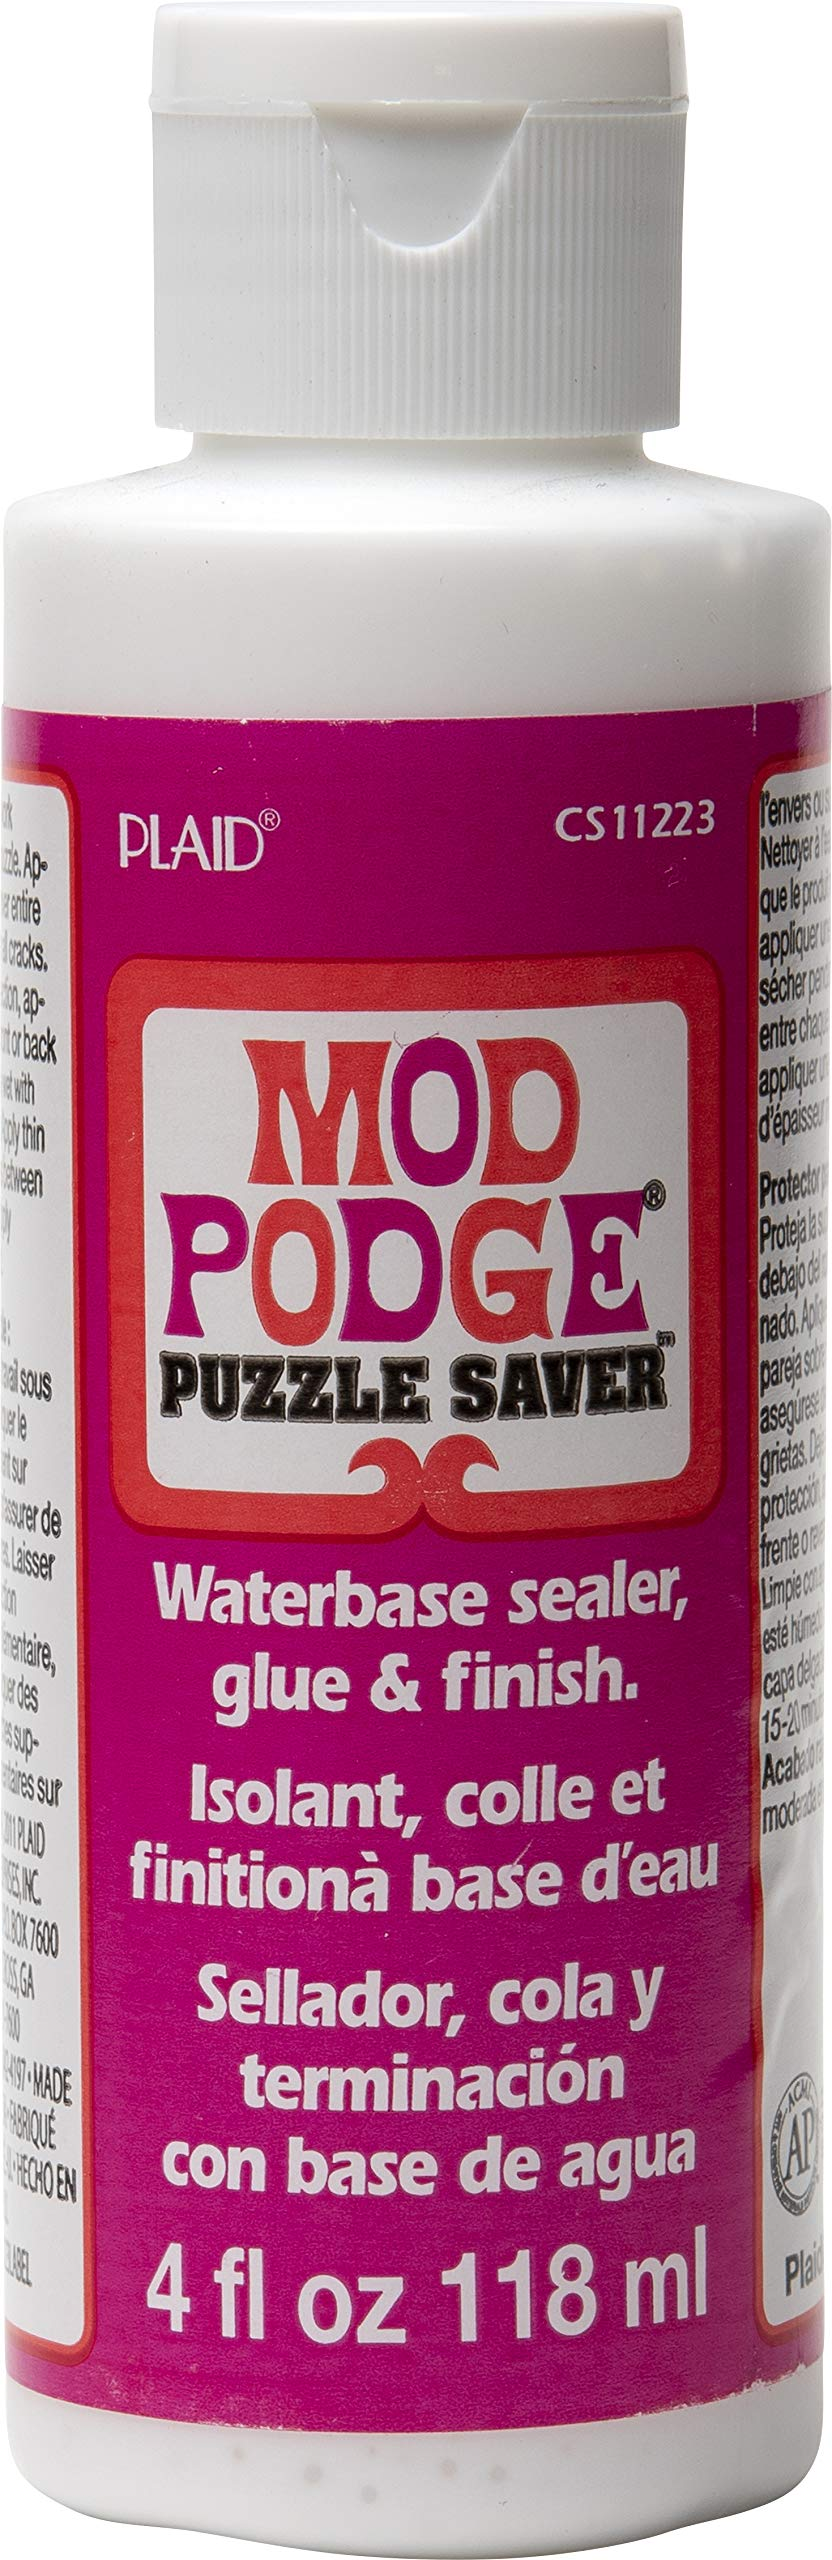 Mod Podge Puzzle Saver (4-Ounce), CS11223, 4 oz, 4 Fl Oz